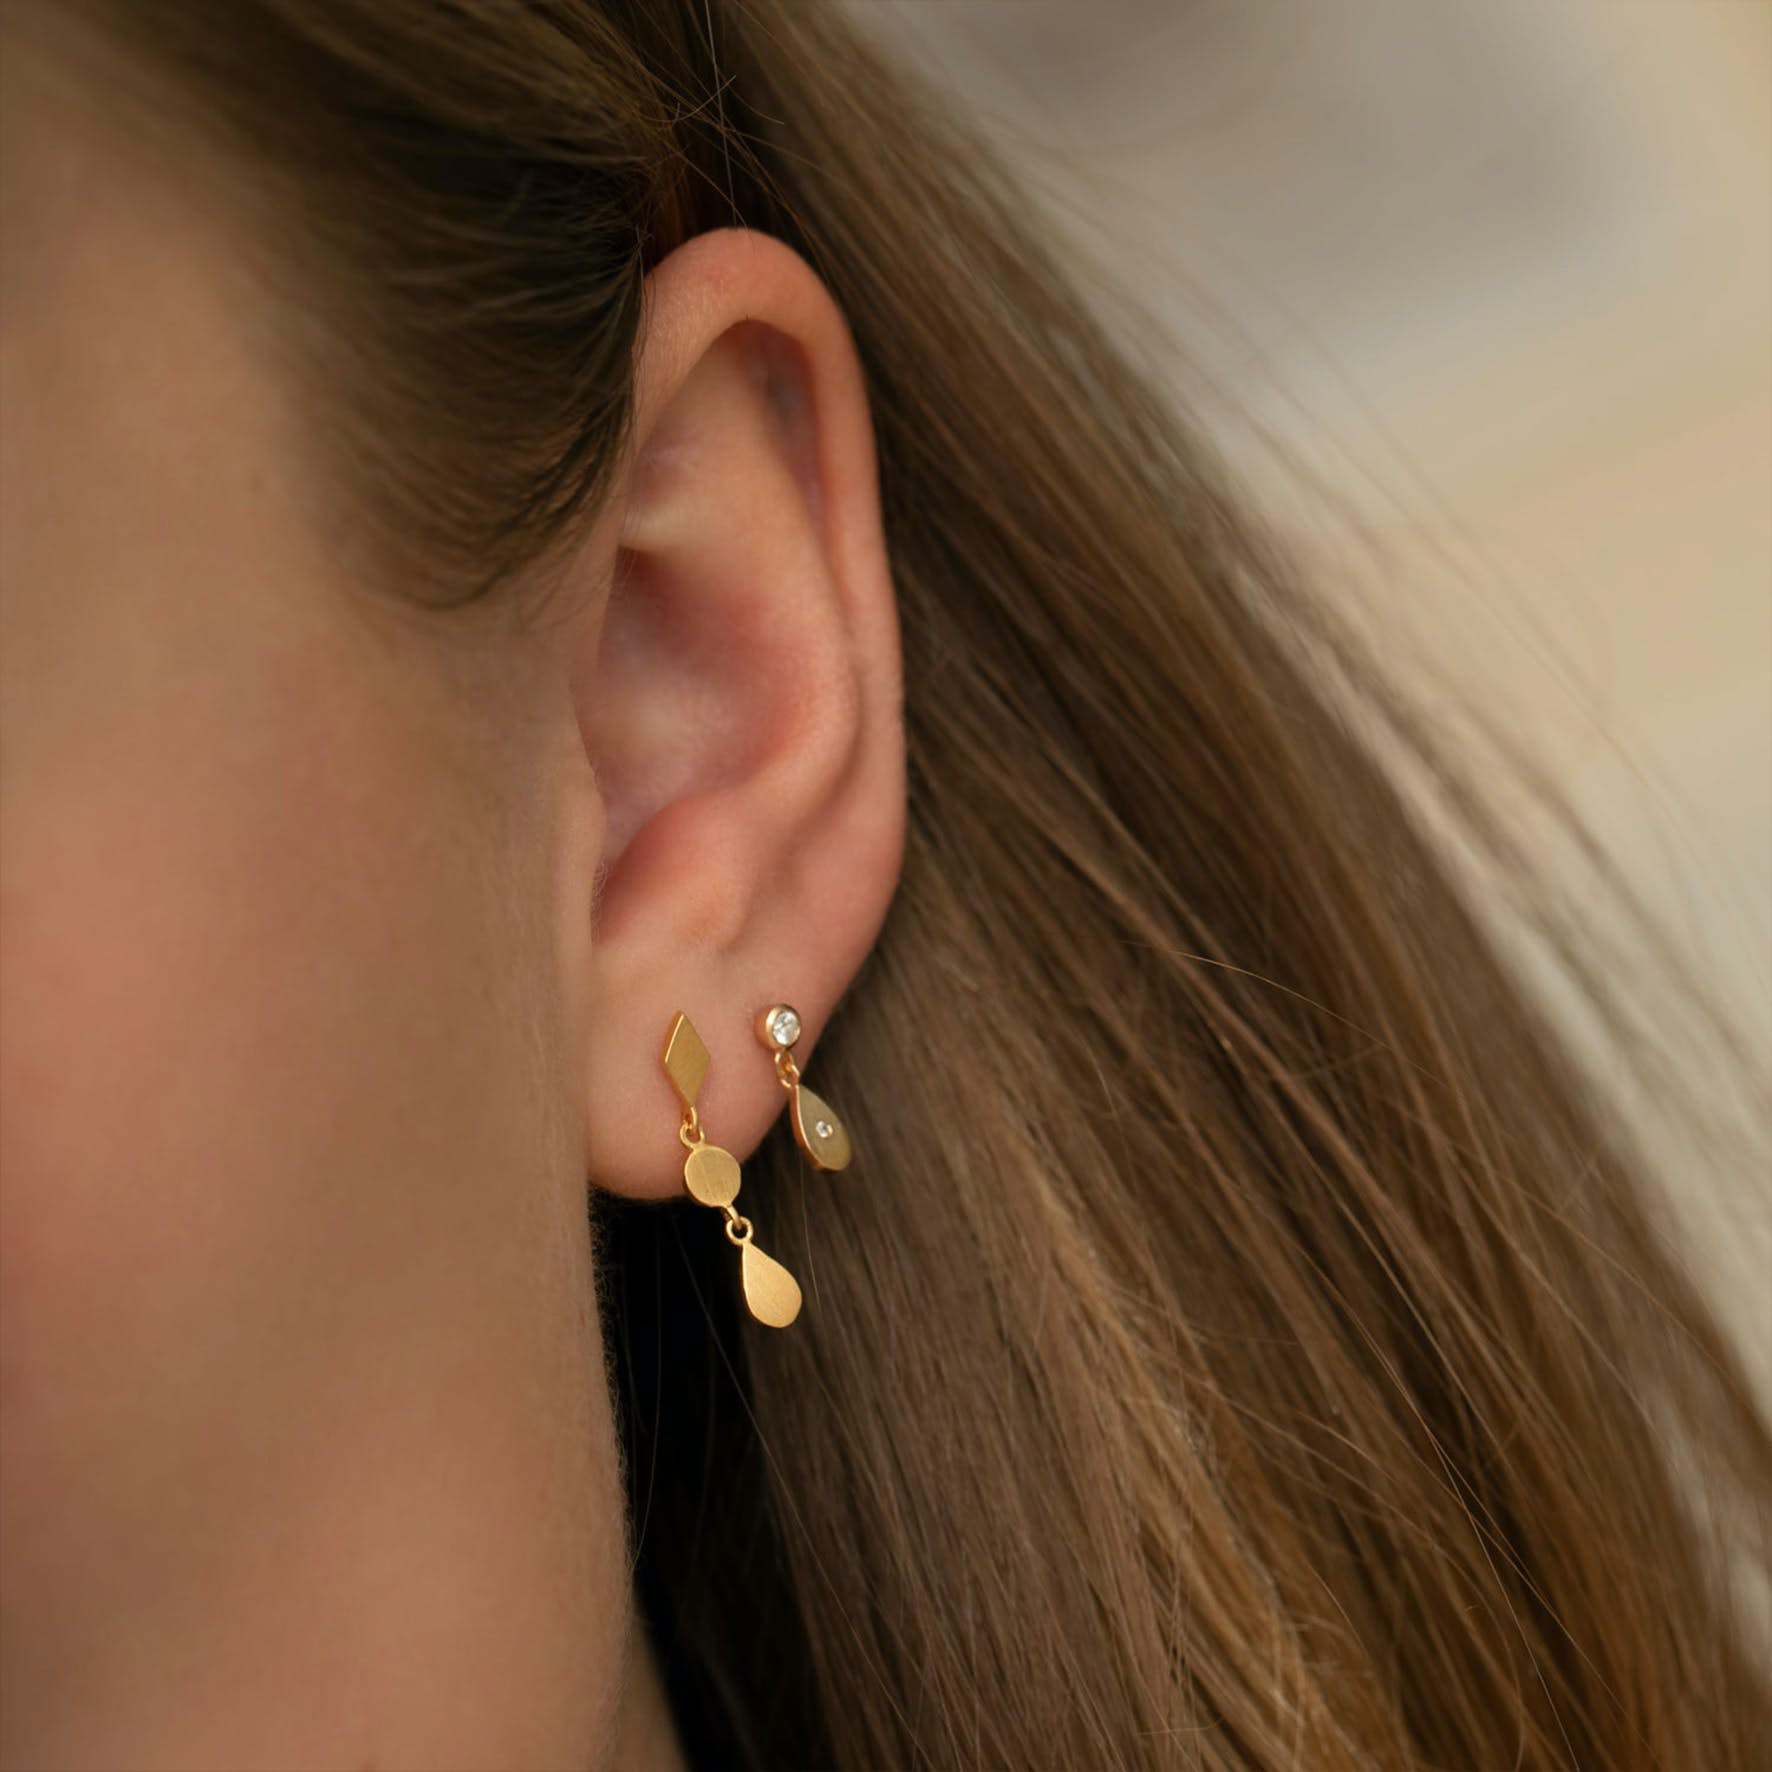 Big Dot with Sparkling Teardrop Earring from STINE A Jewelry in Goldplated-Silver Sterling 925